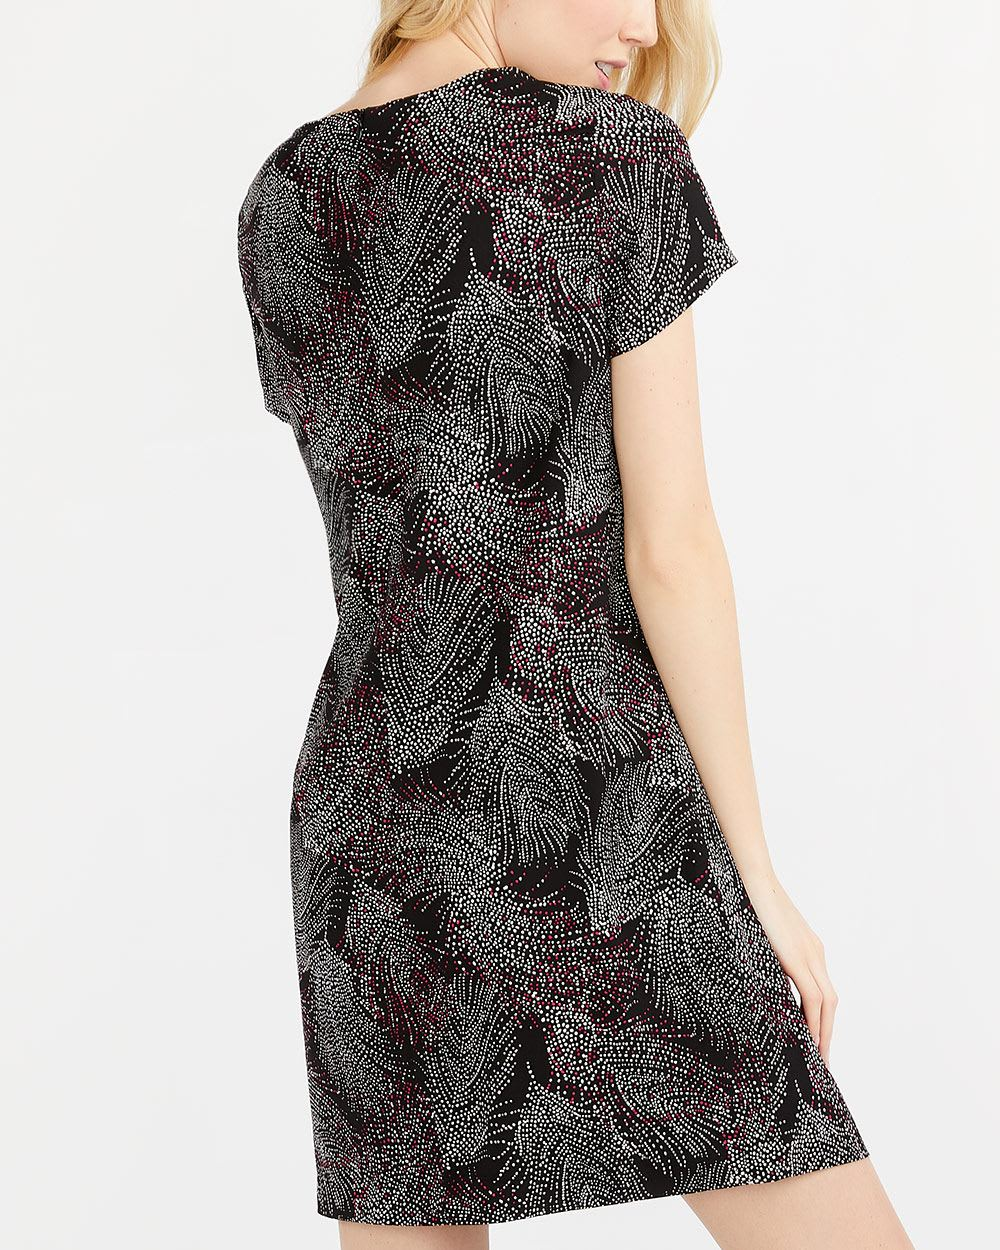 Willow & Thread Printed Shift Dress